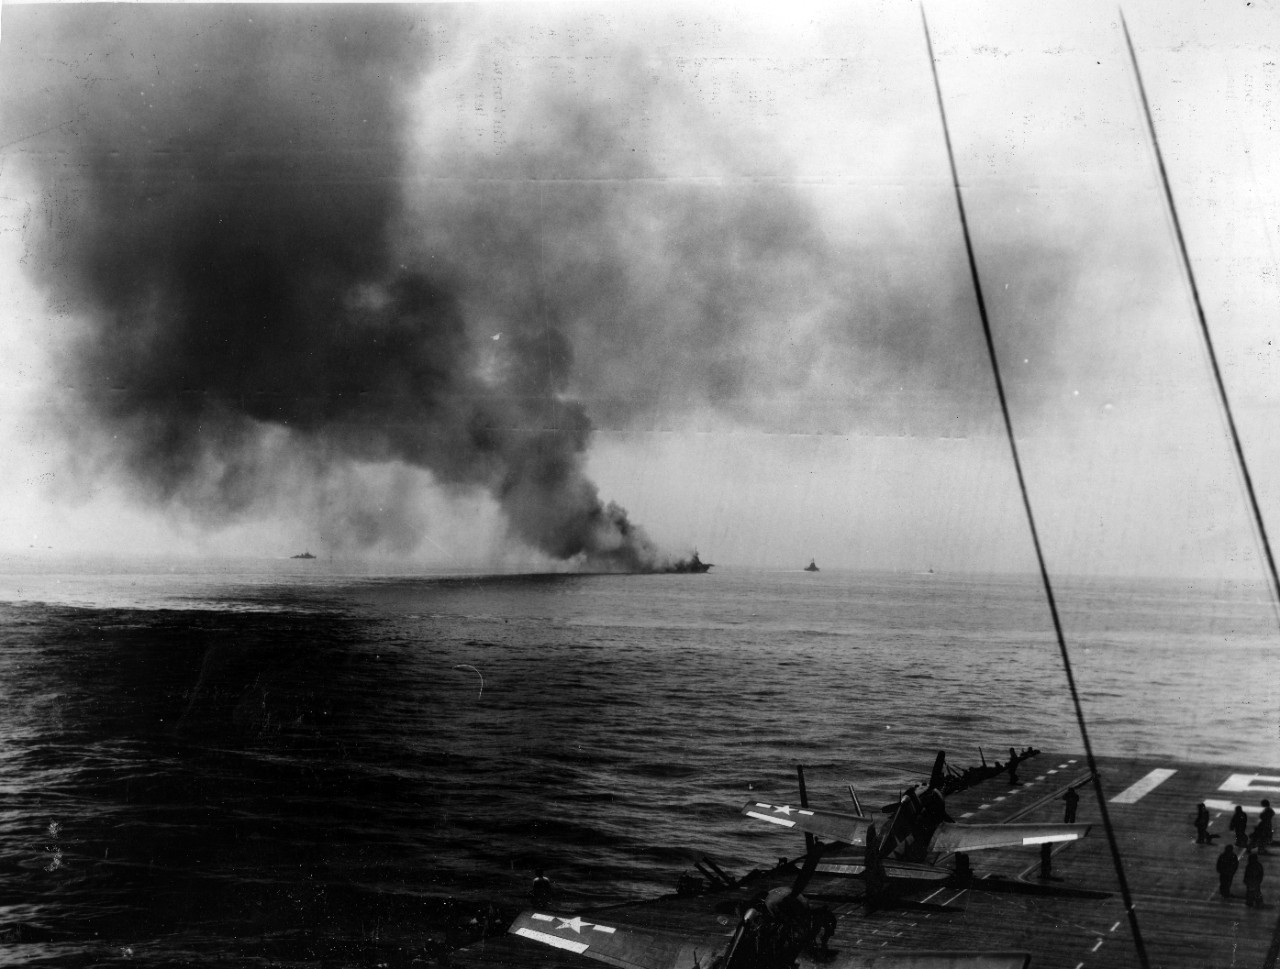 <p>S-100-H.001 USS Bunker Hill (CV 17)&nbsp;burning after kamikaze attack&nbsp;- 11 May 1945</p>